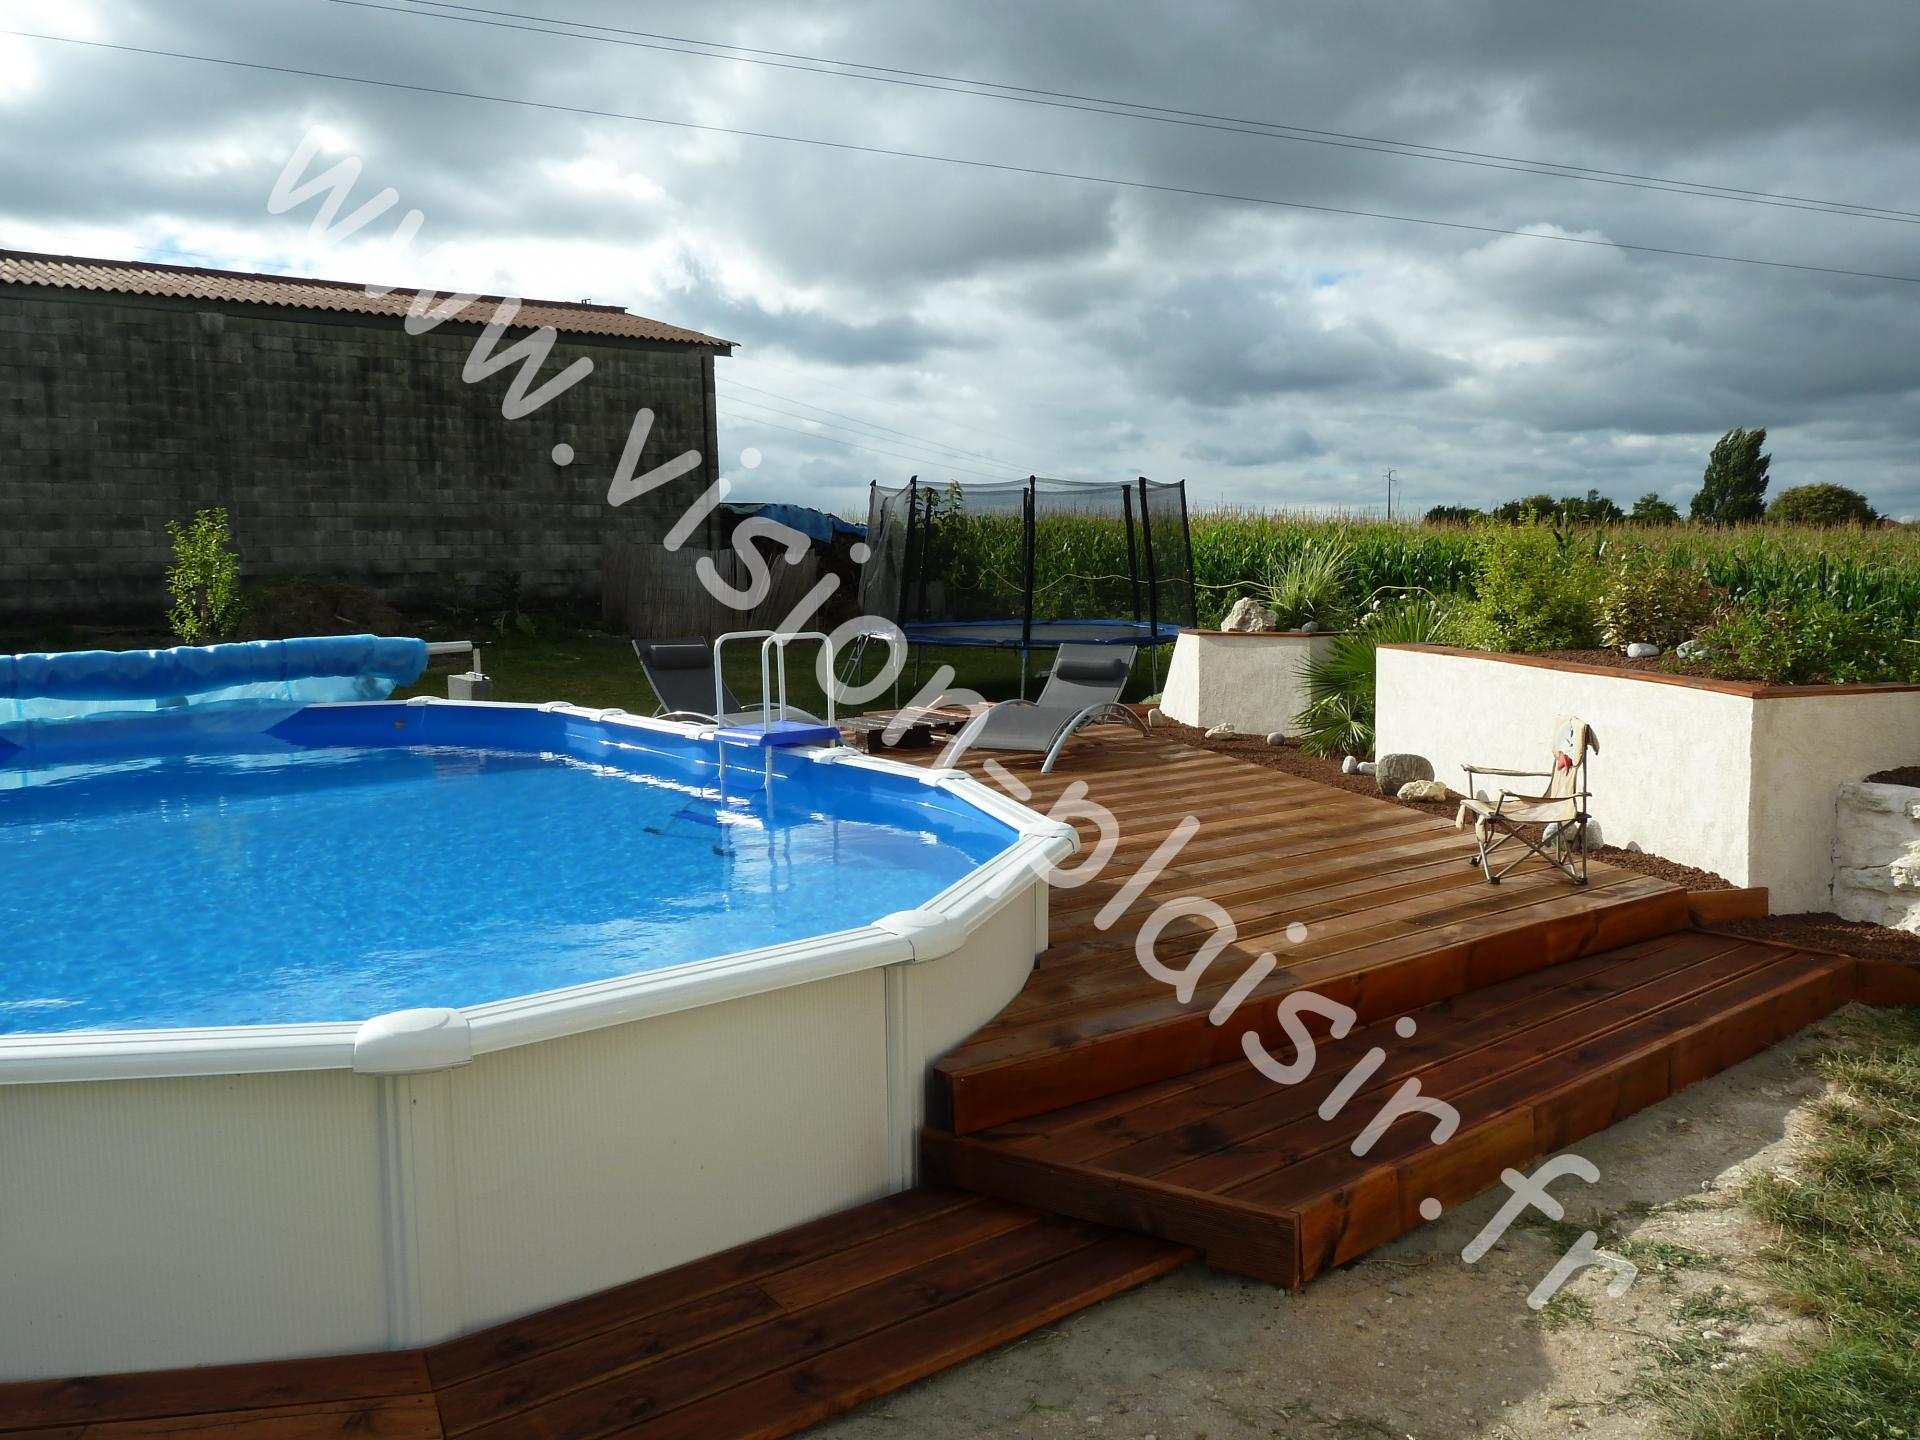 Blog de vision plaisir piscine hors sol semi enterr e for Piscine hors sol bois semi enterree